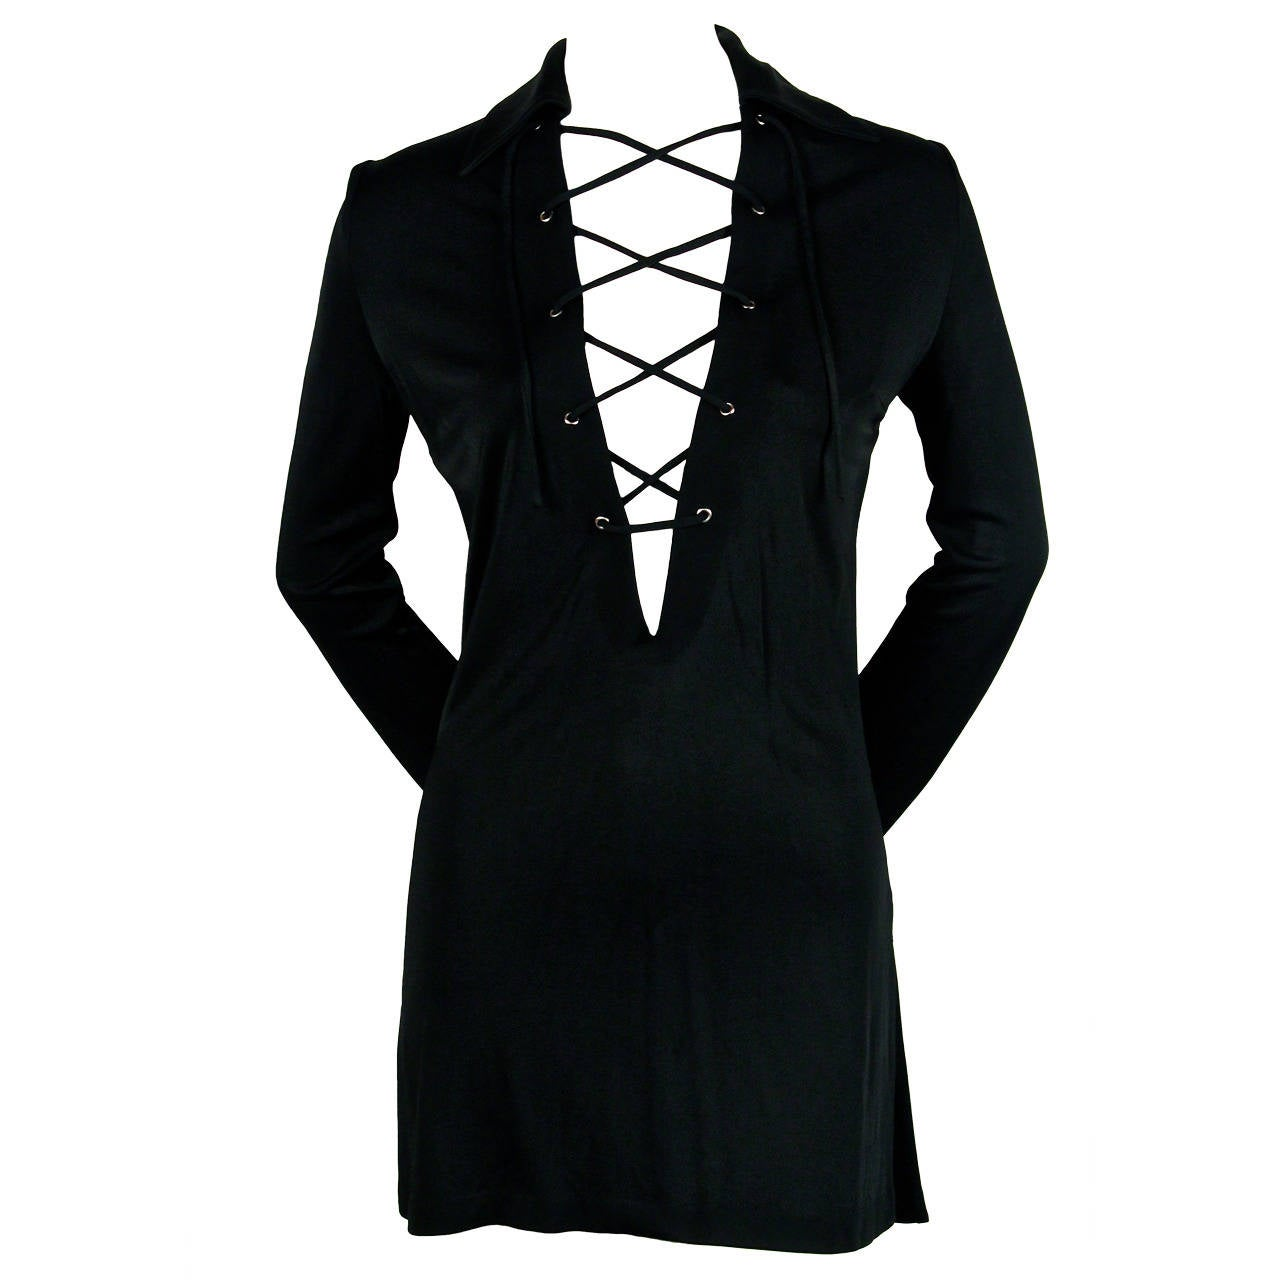 1996 TOM FORD for GUCCI black lace up mini dress 1